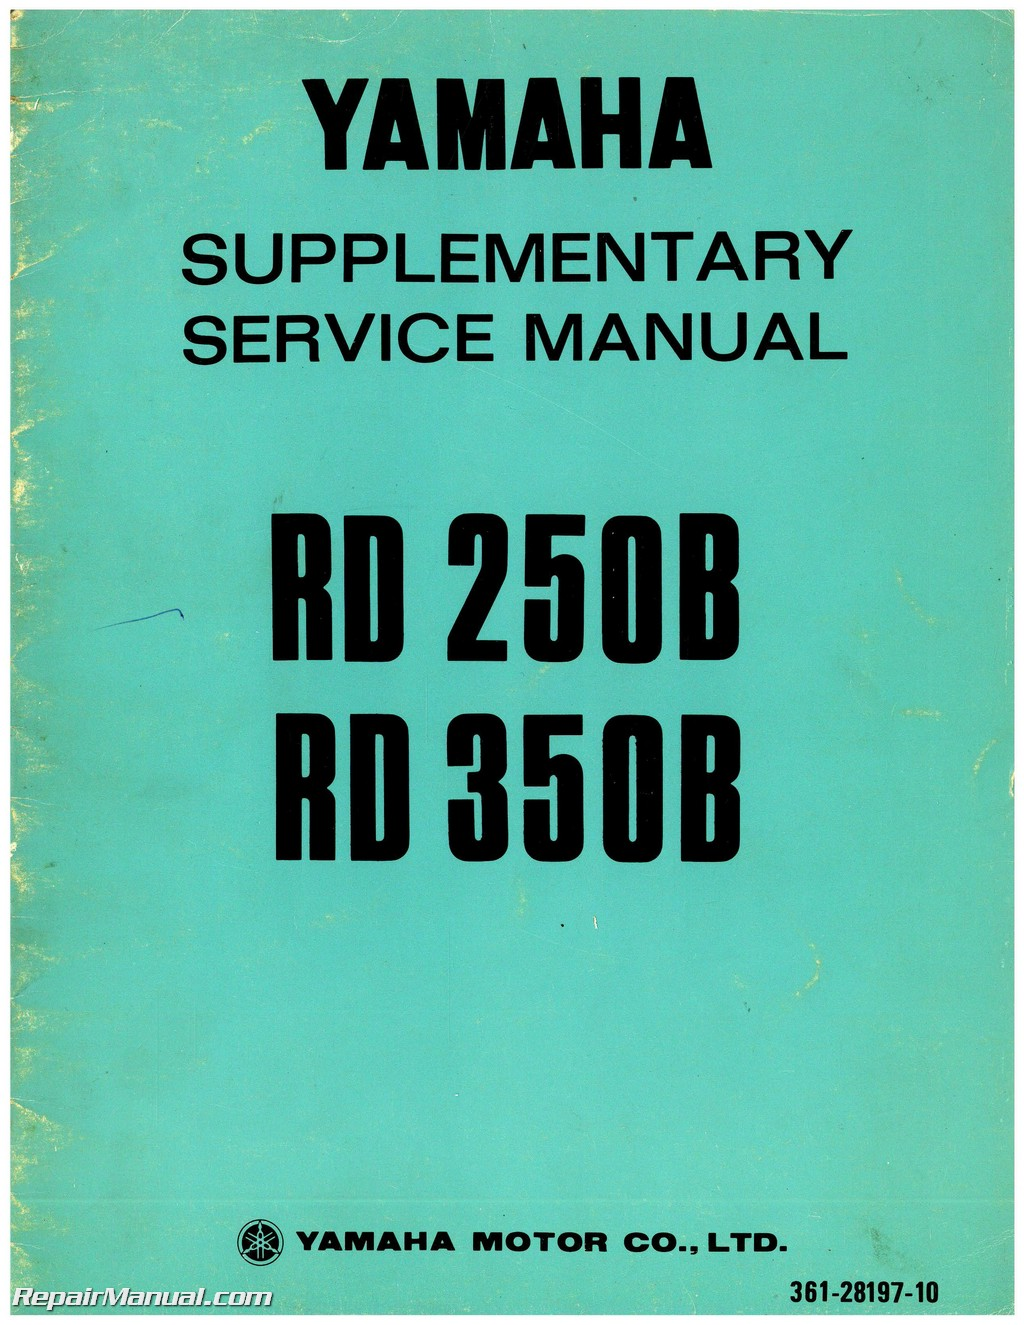 1975 Yamaha RD250B and 1975 Yamaha RD350B Service Manual Supplement